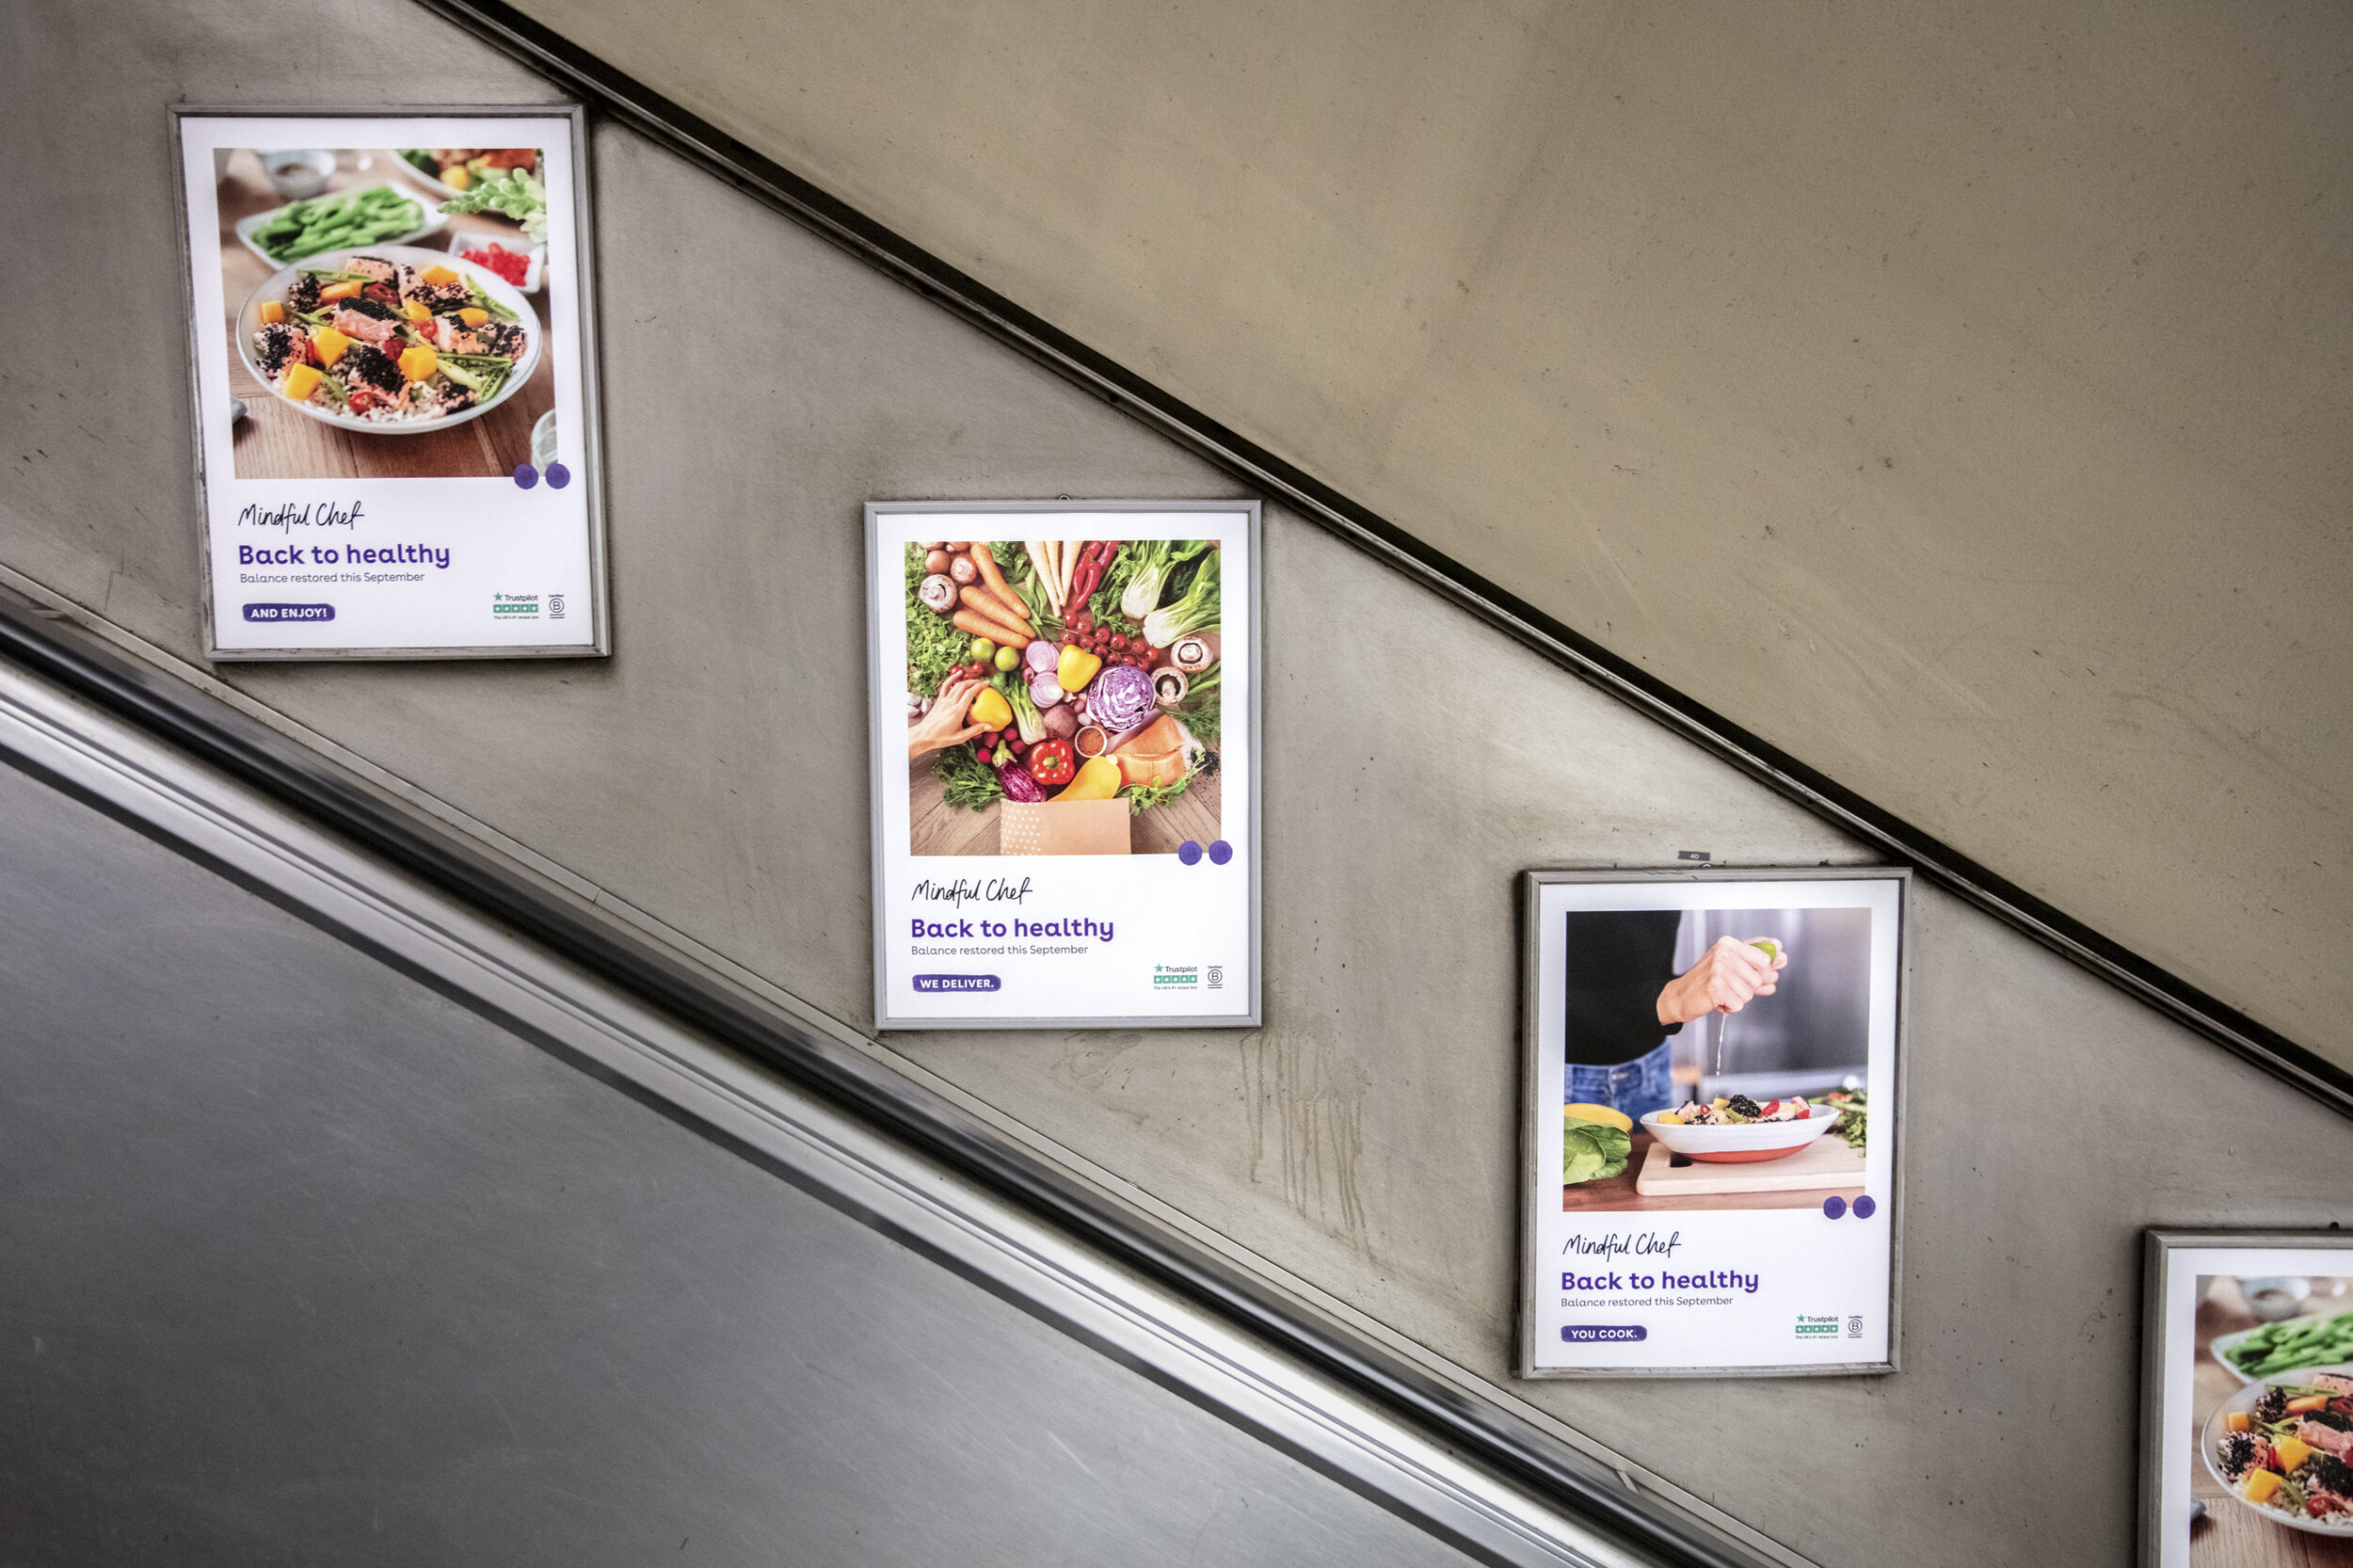 LEP London Underground ad for Mindful Chef's 'Back to Healthy' campaign - London, 2019